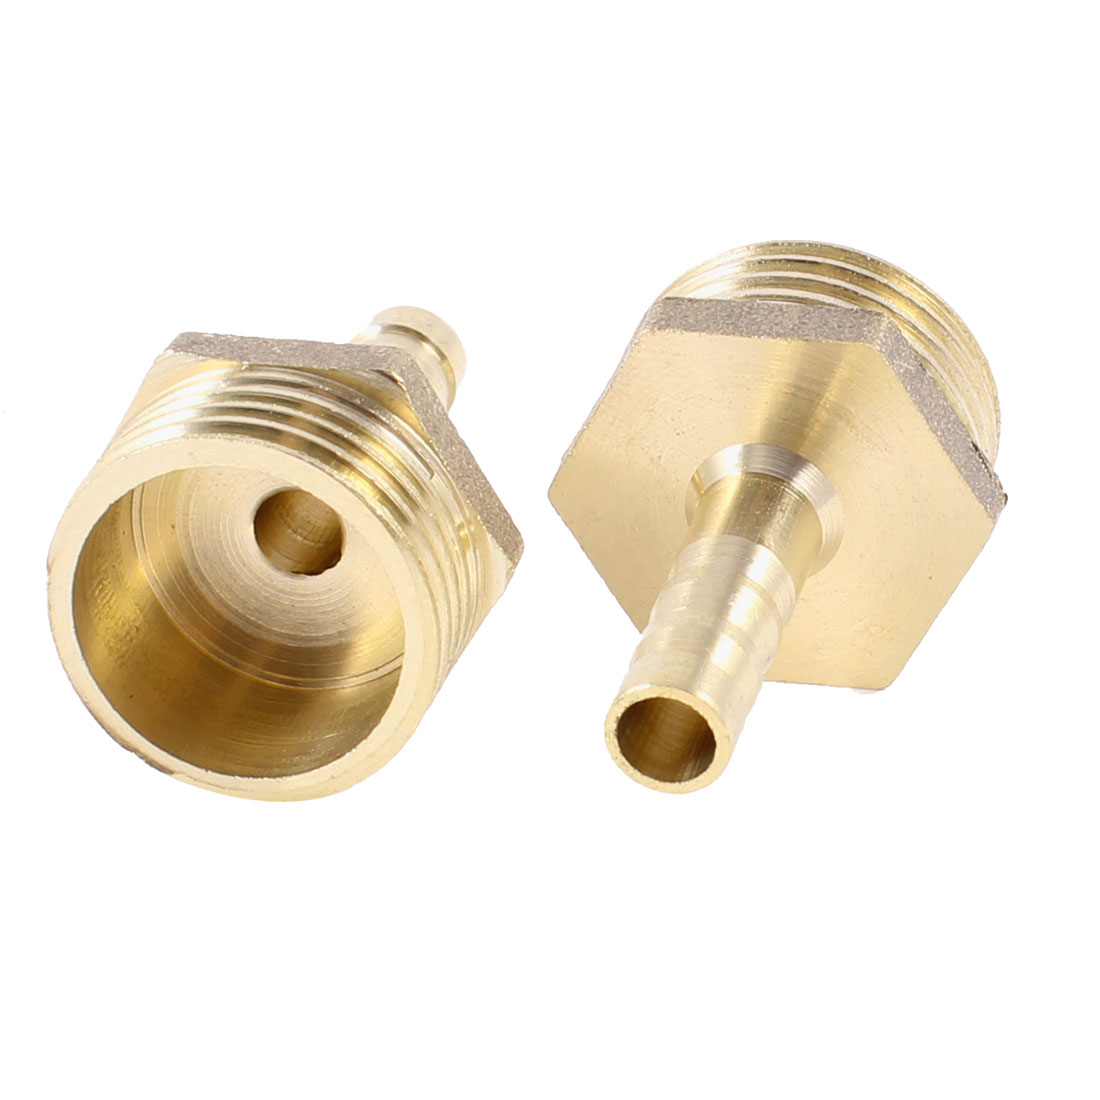 "2PCS Brass 6mm Air Gas Pipe Hose Barb 1/2"" PT Male Thread Couplings Adapter"